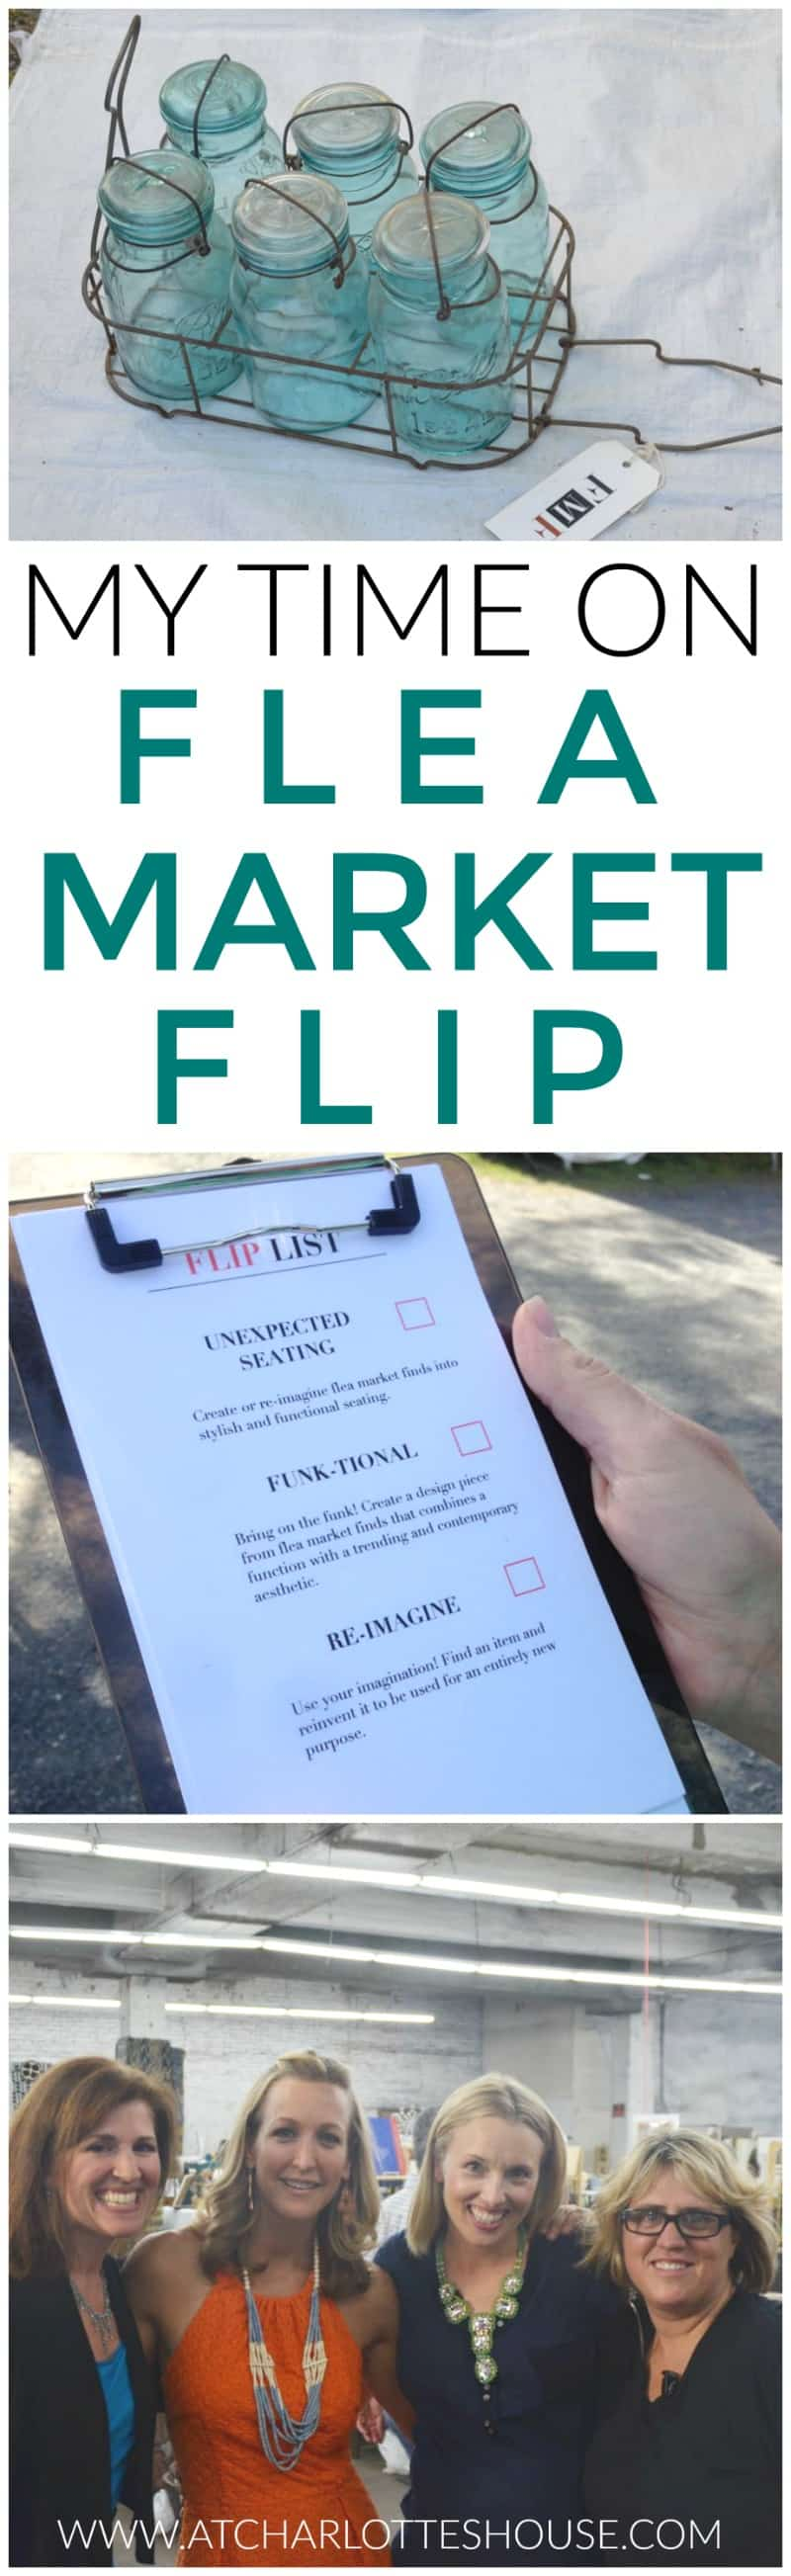 I got to be on Flea Market Flip and I'm sharing all the fun and exciting details!